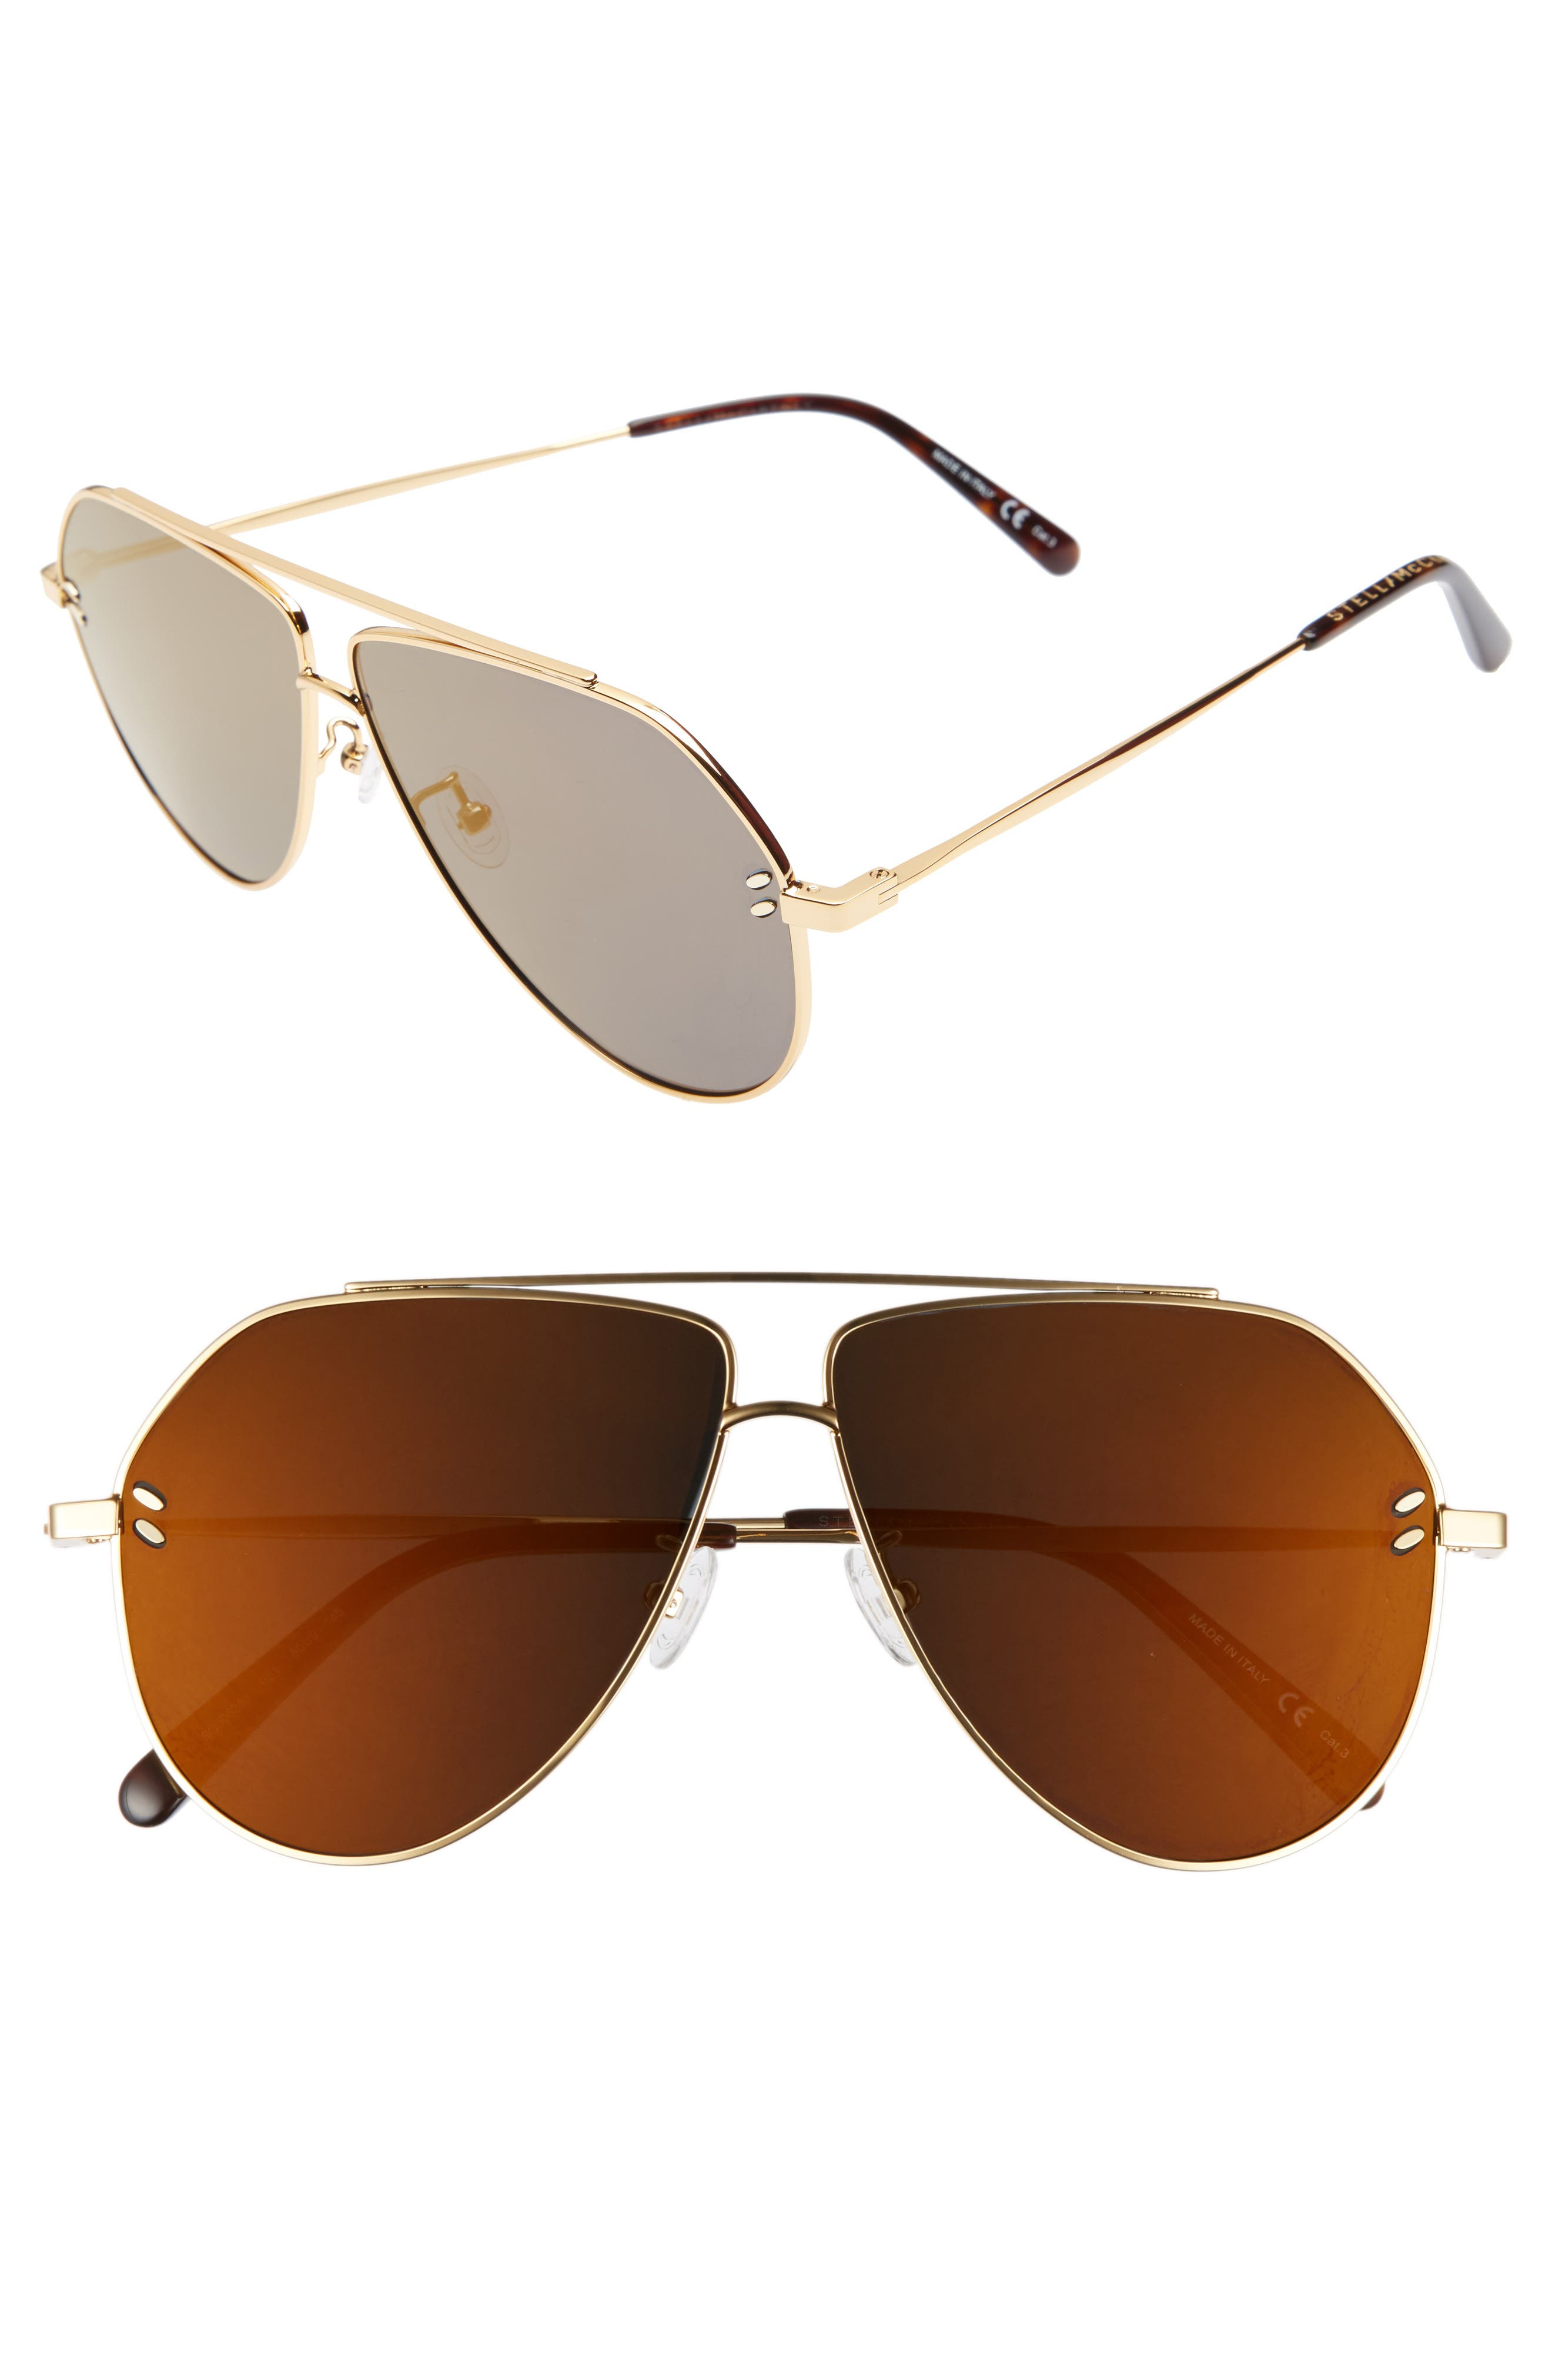 60MM AVIATOR SUNGLASSES - GOLD